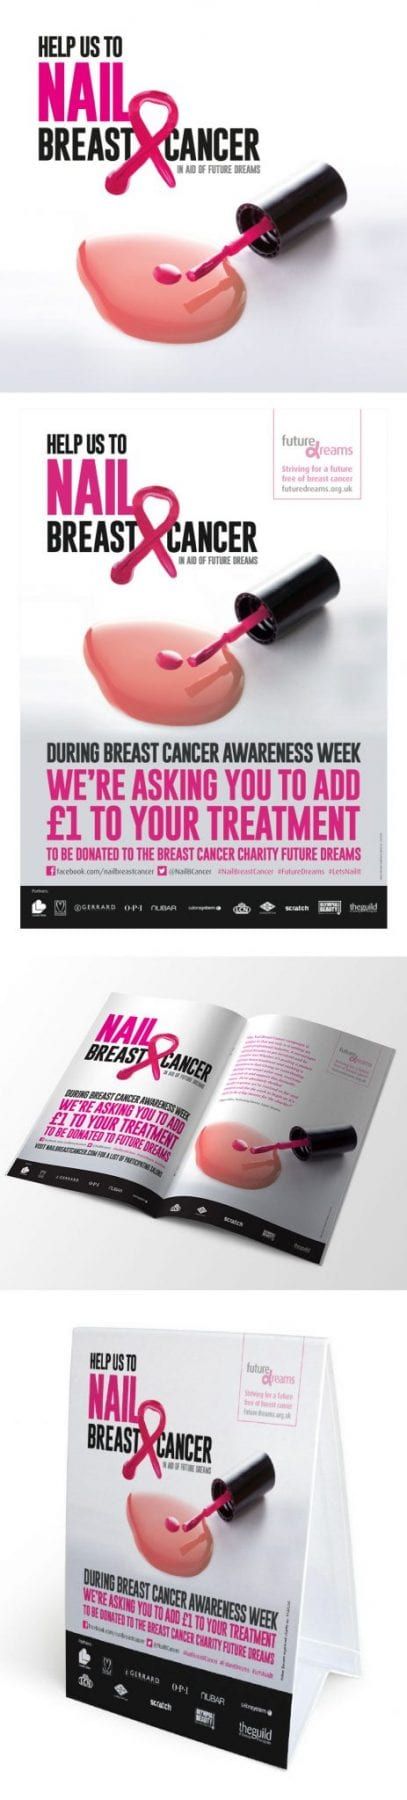 Image of nail breast cancer poster and booklet designed by graphic designer and branding designer Jessica Croome of Perth WA